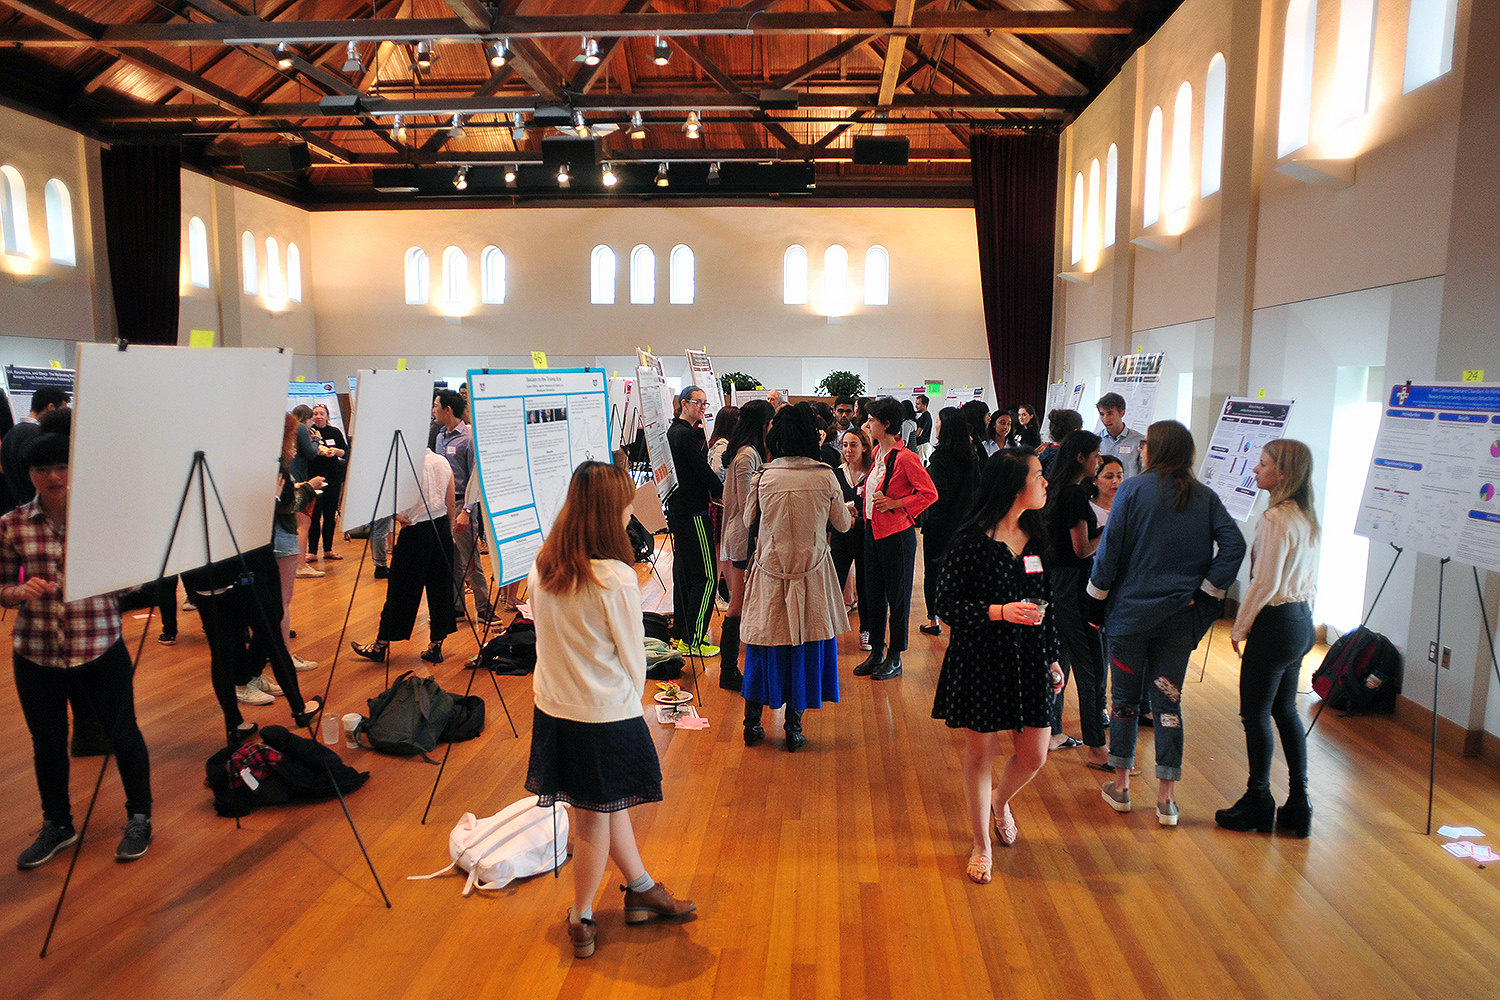 The Psychology Department hosted a research poster presentation April 27 in Beckham Hall. More than 102 students presented 46 posters.